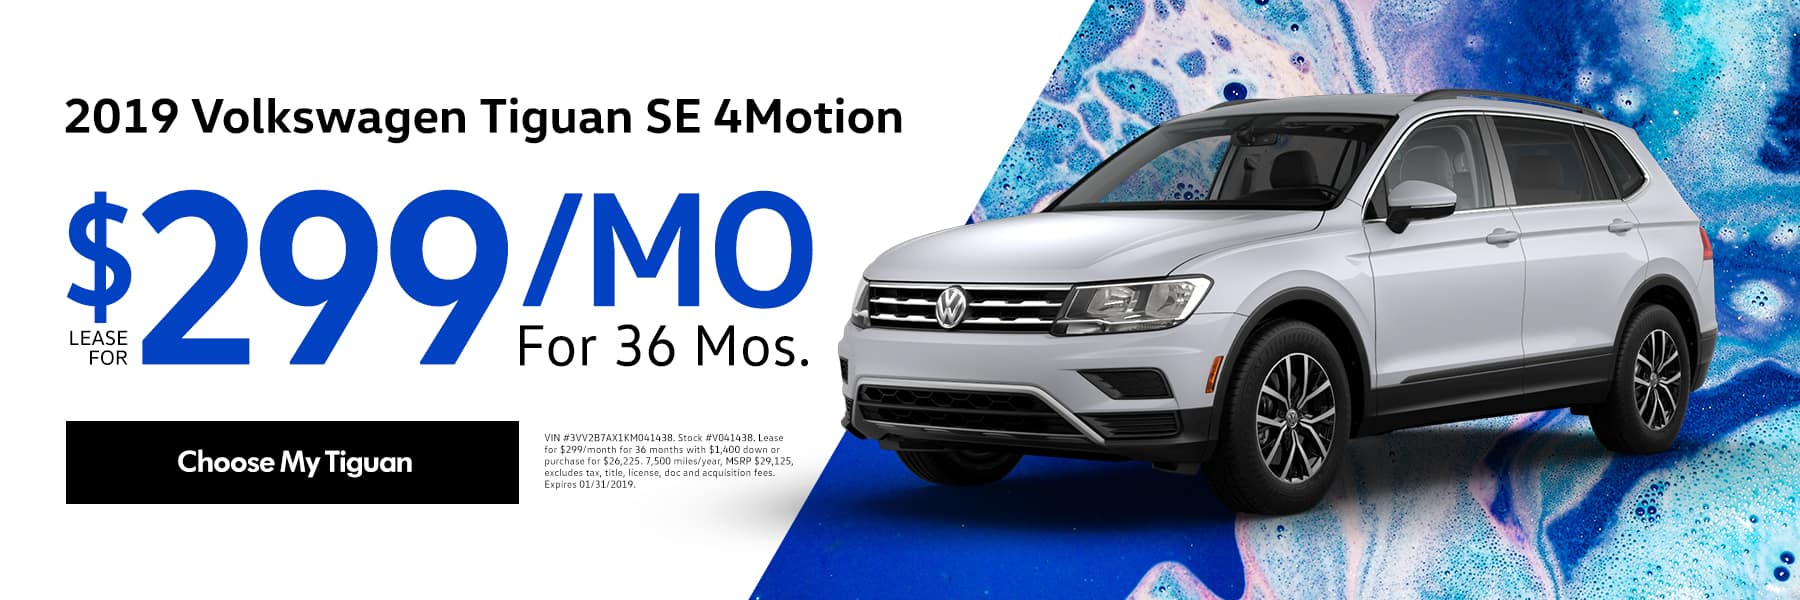 Lease the 2019 Volkswagen Tiguan SE 4Motion for $299/month for 36 months - Choose My Tiguan